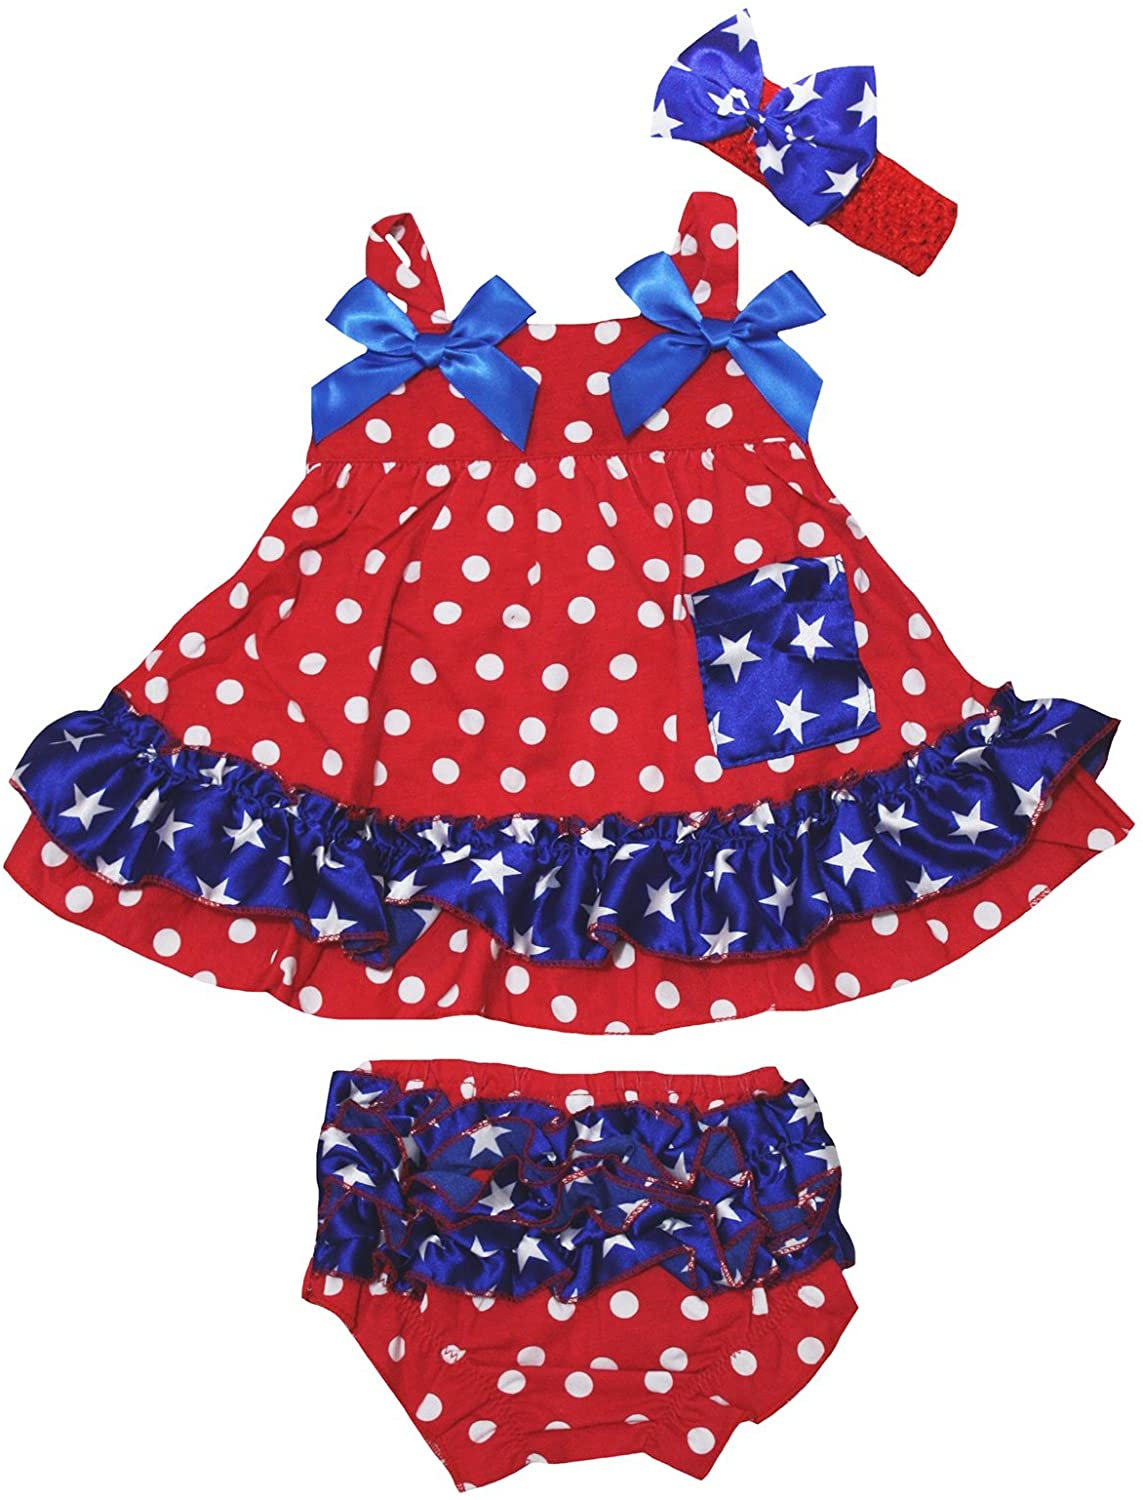 Petitebella Red Polka Dots Blue Stars Swing Top Bloomer Baby Outfit Nb-24m